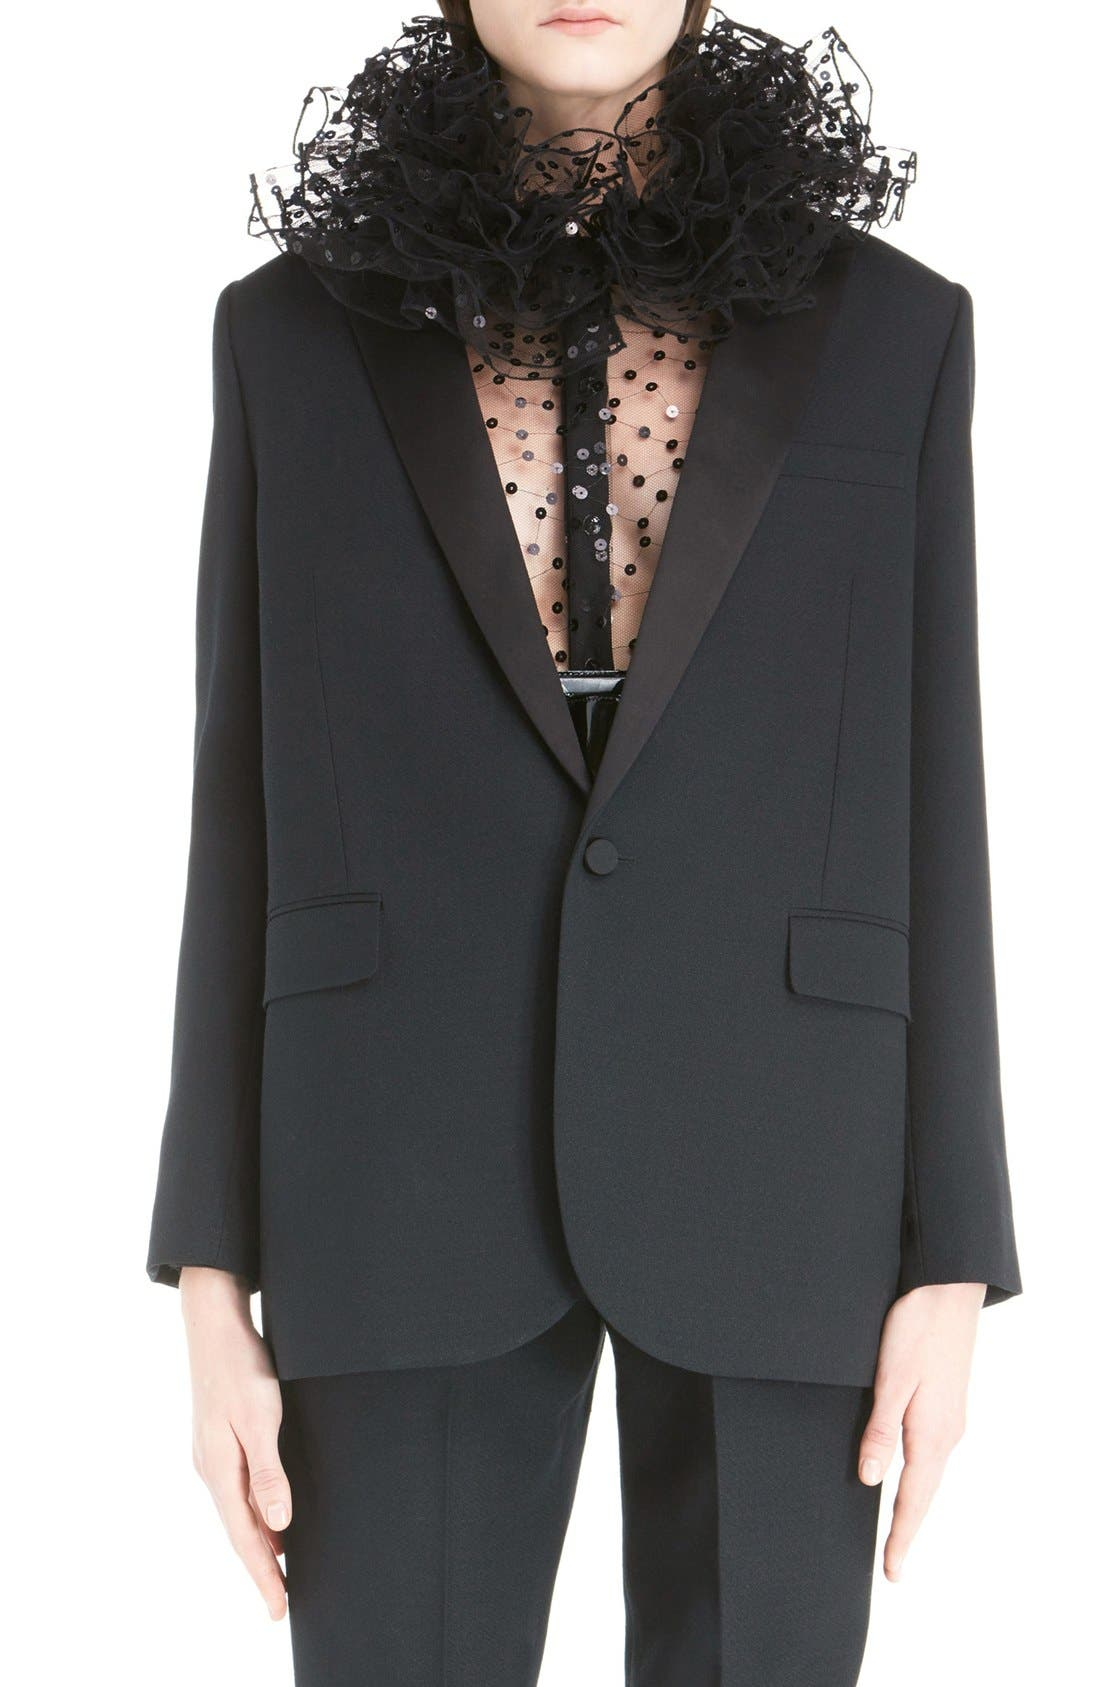 Alternate Image 1 Selected - Saint Laurent One-Button Tuxedo Jacket